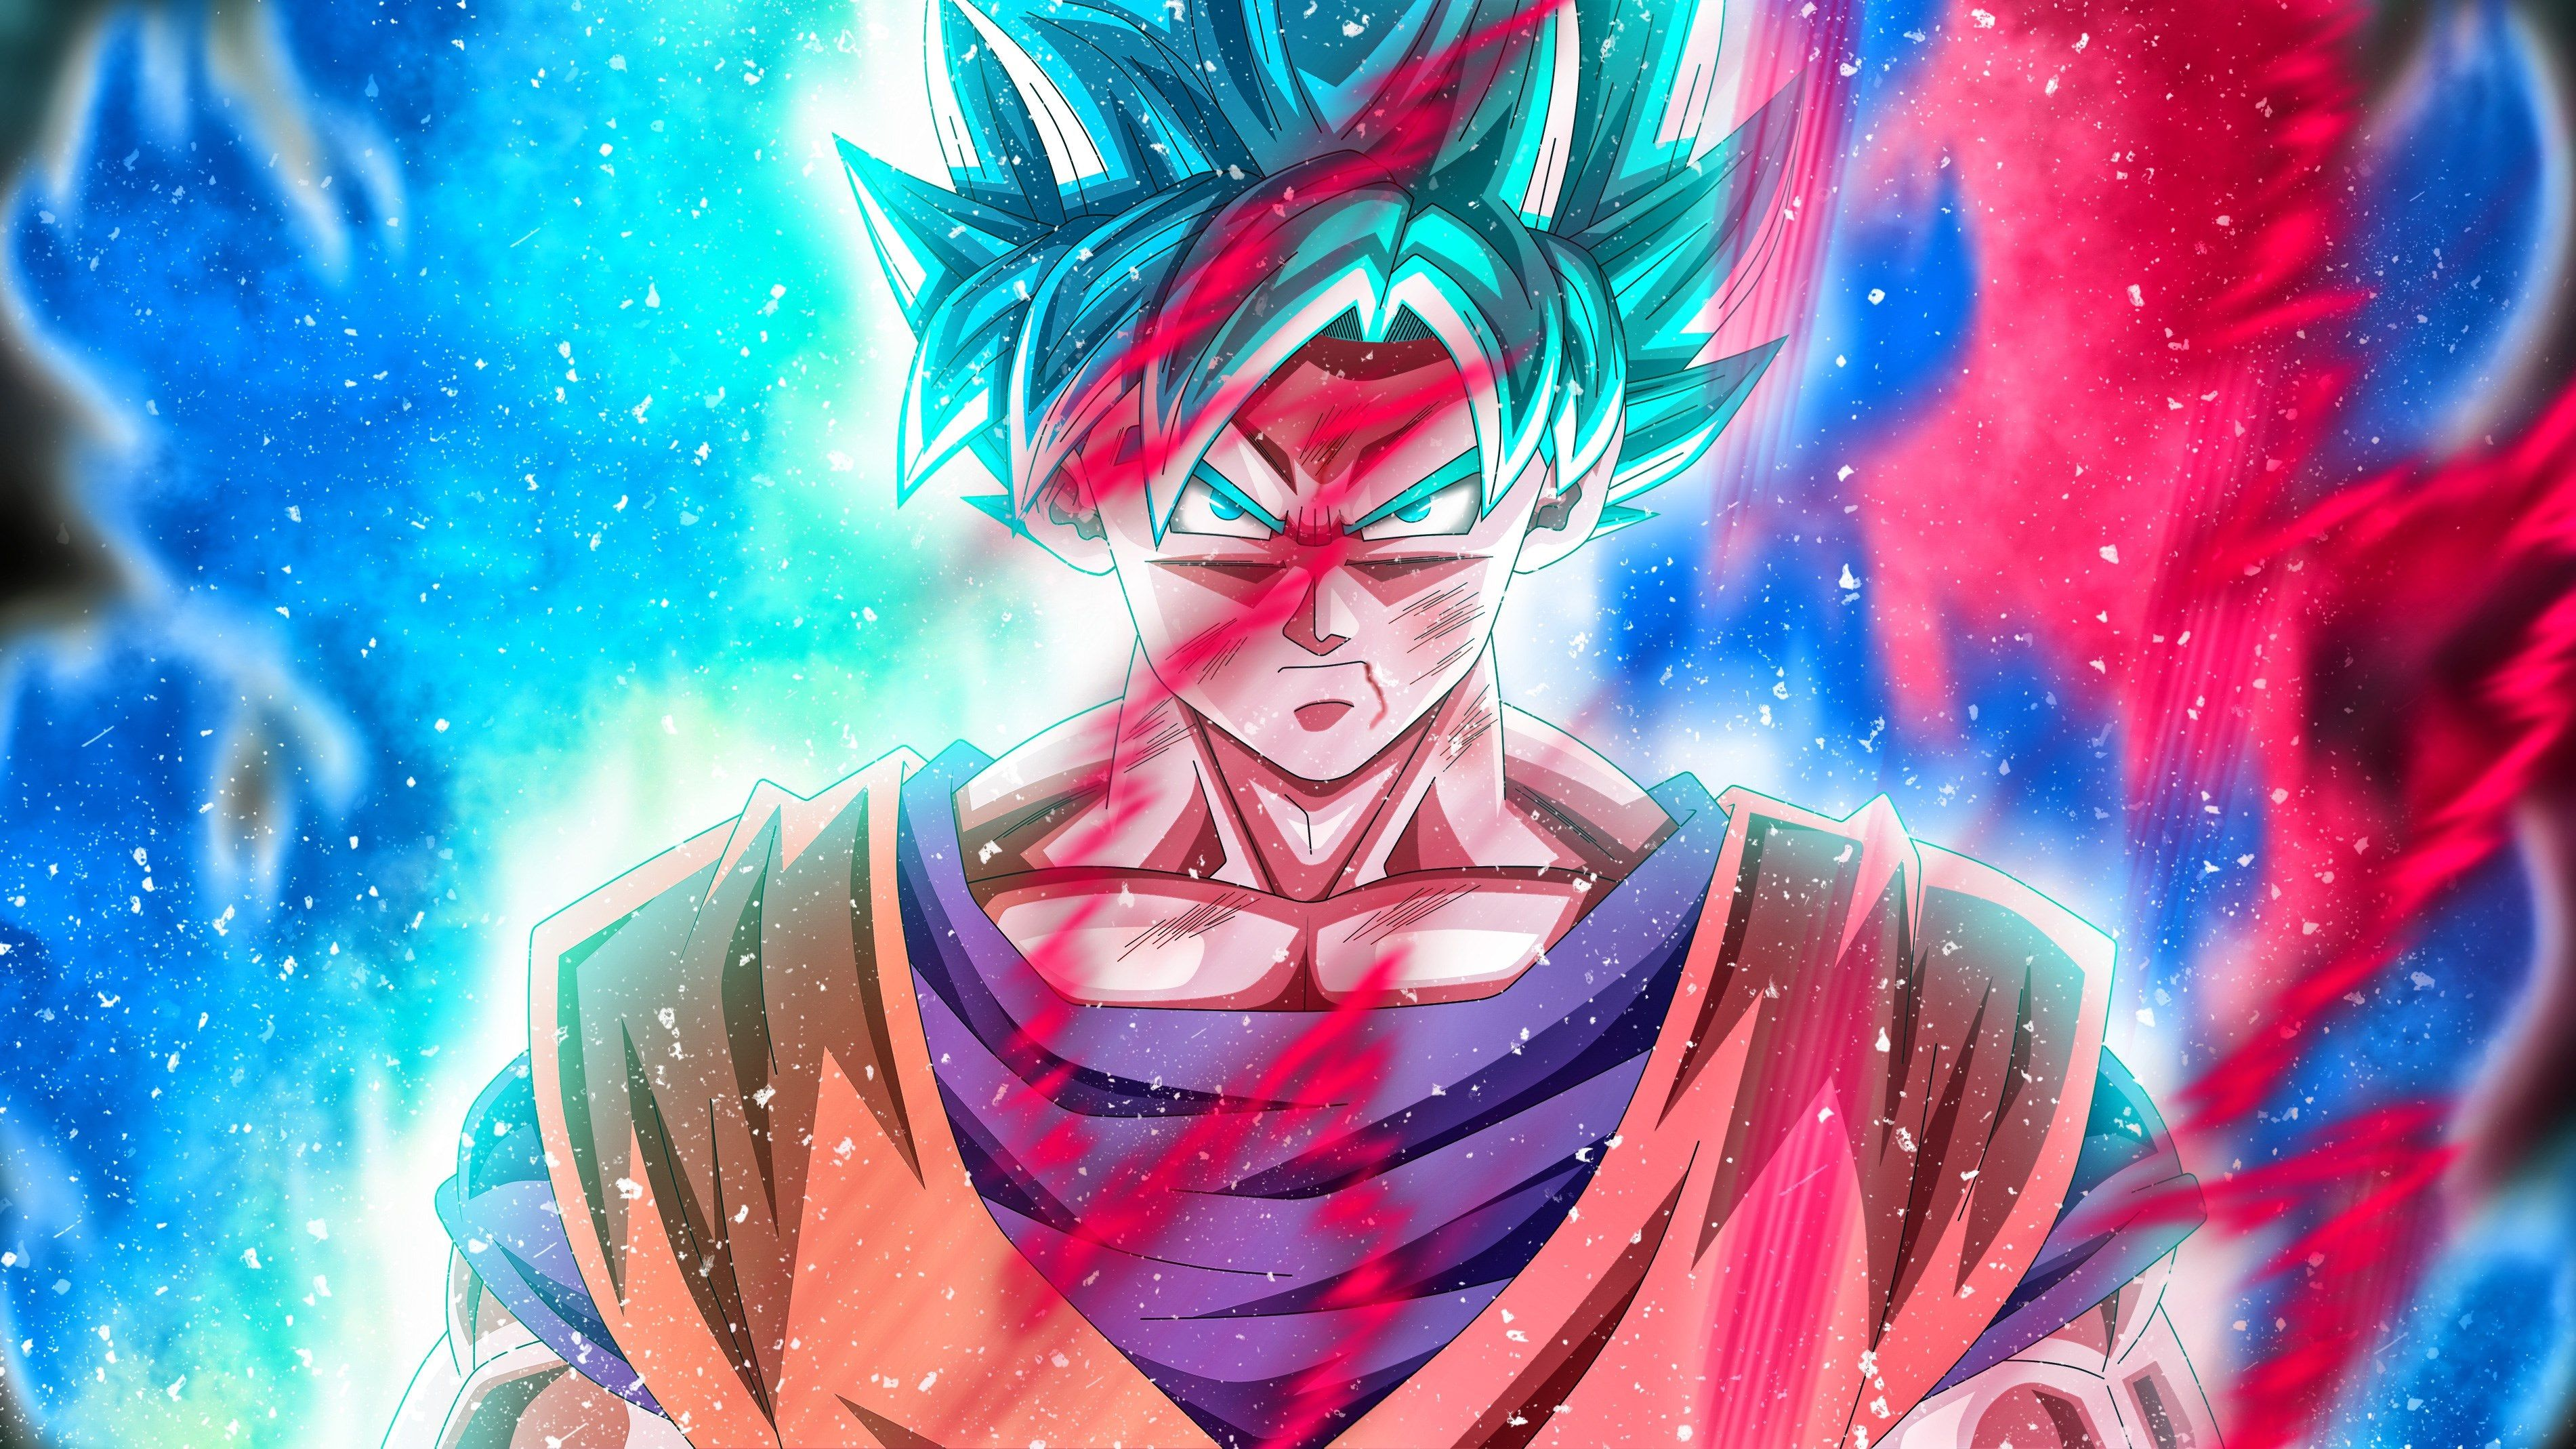 3802x2138 Dragon Ball Super 4k Free Hd Wallpaper Free Download Goku Super Saiyan Blue Dragon Ball Super Wallpapers Super Saiyan Blue Kaioken